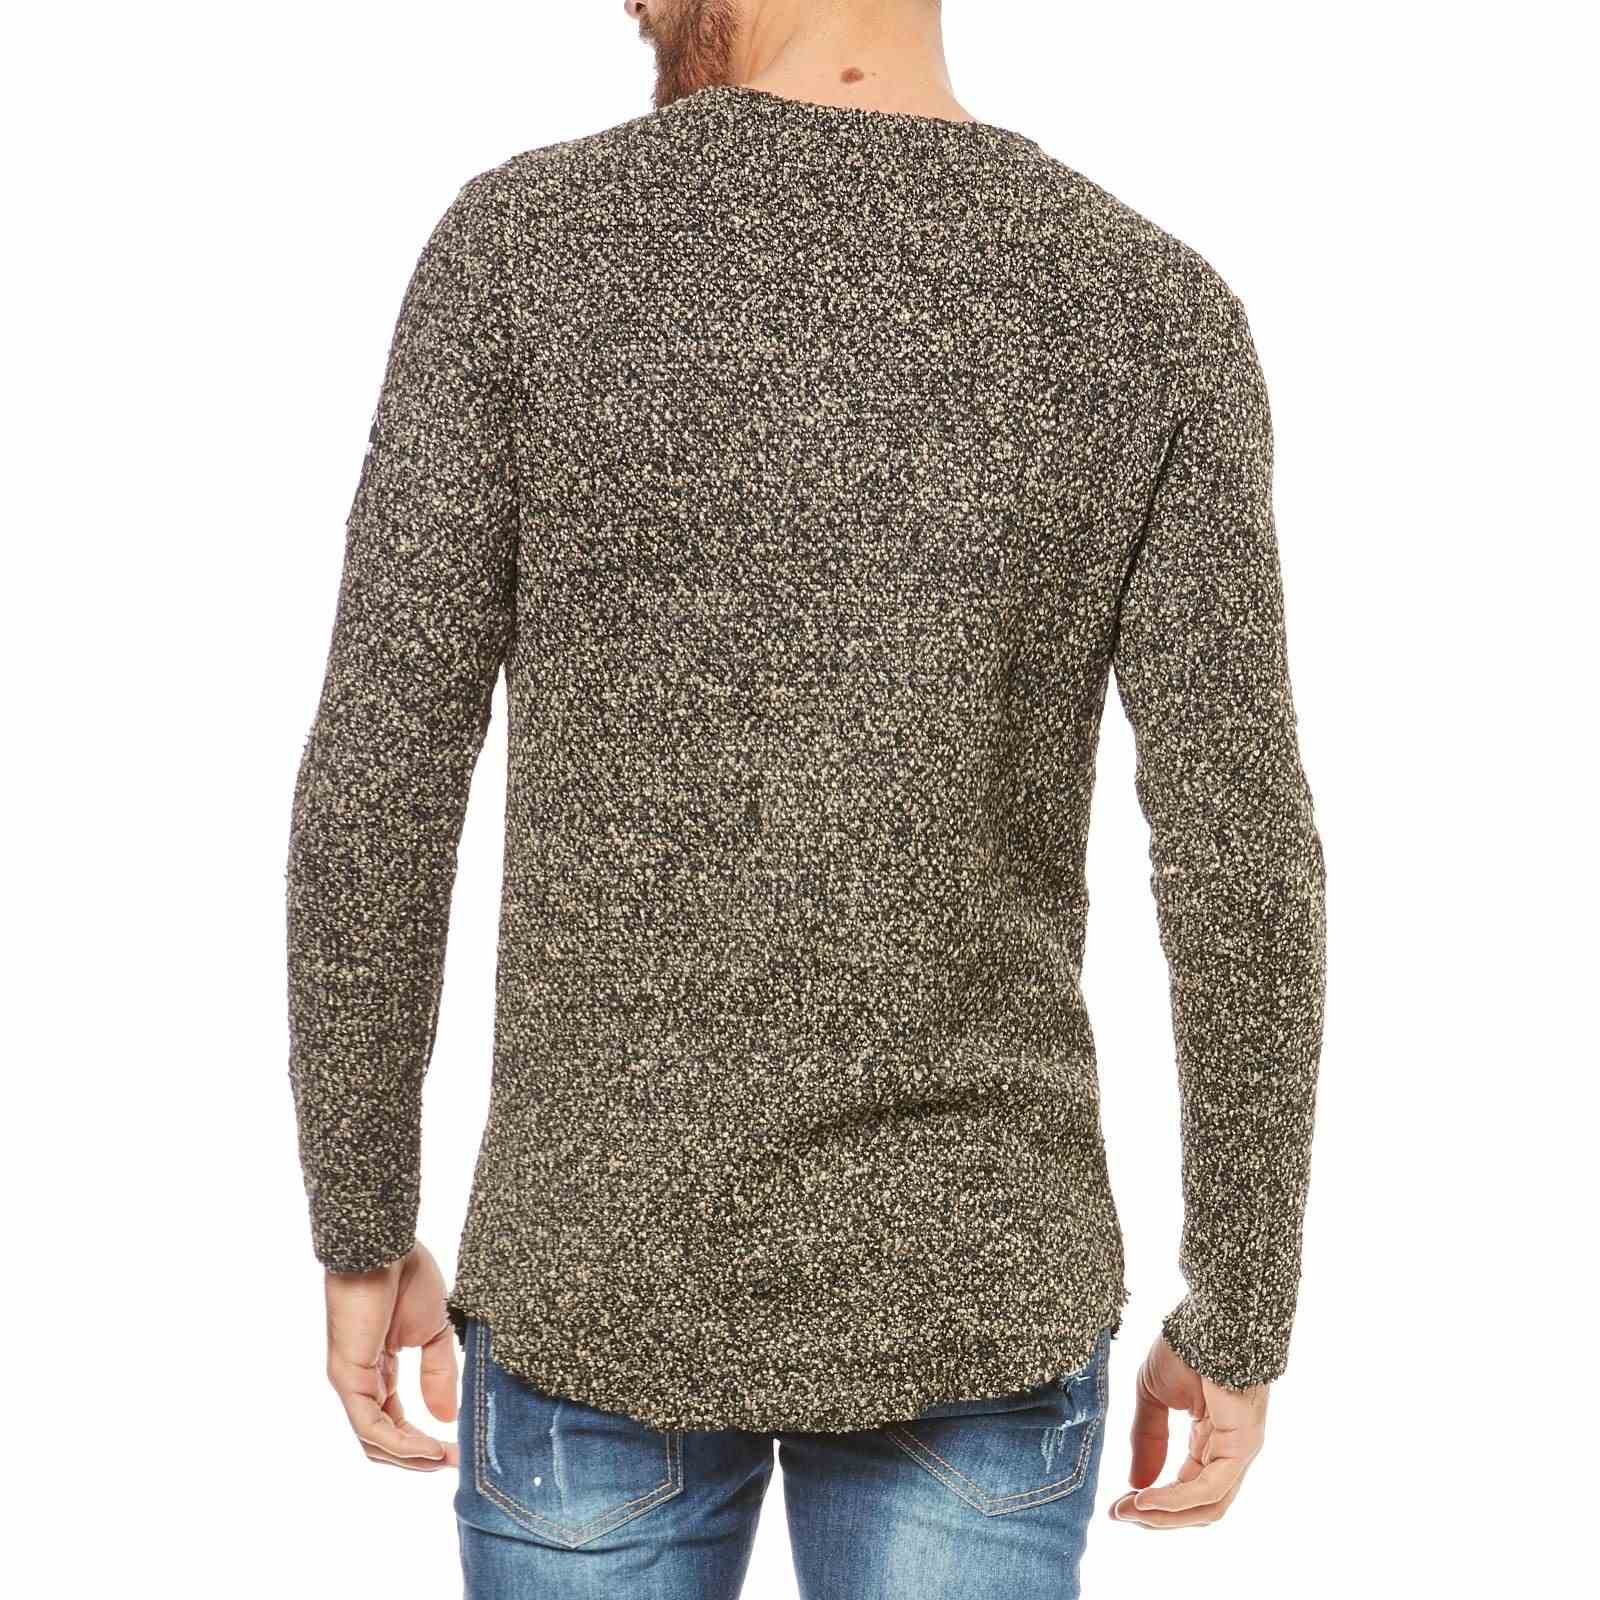 Noir Hite Pull Pull Couture Couture Noir Hite Pull Noir Hite Couture Hite Couture F4nqxgw4